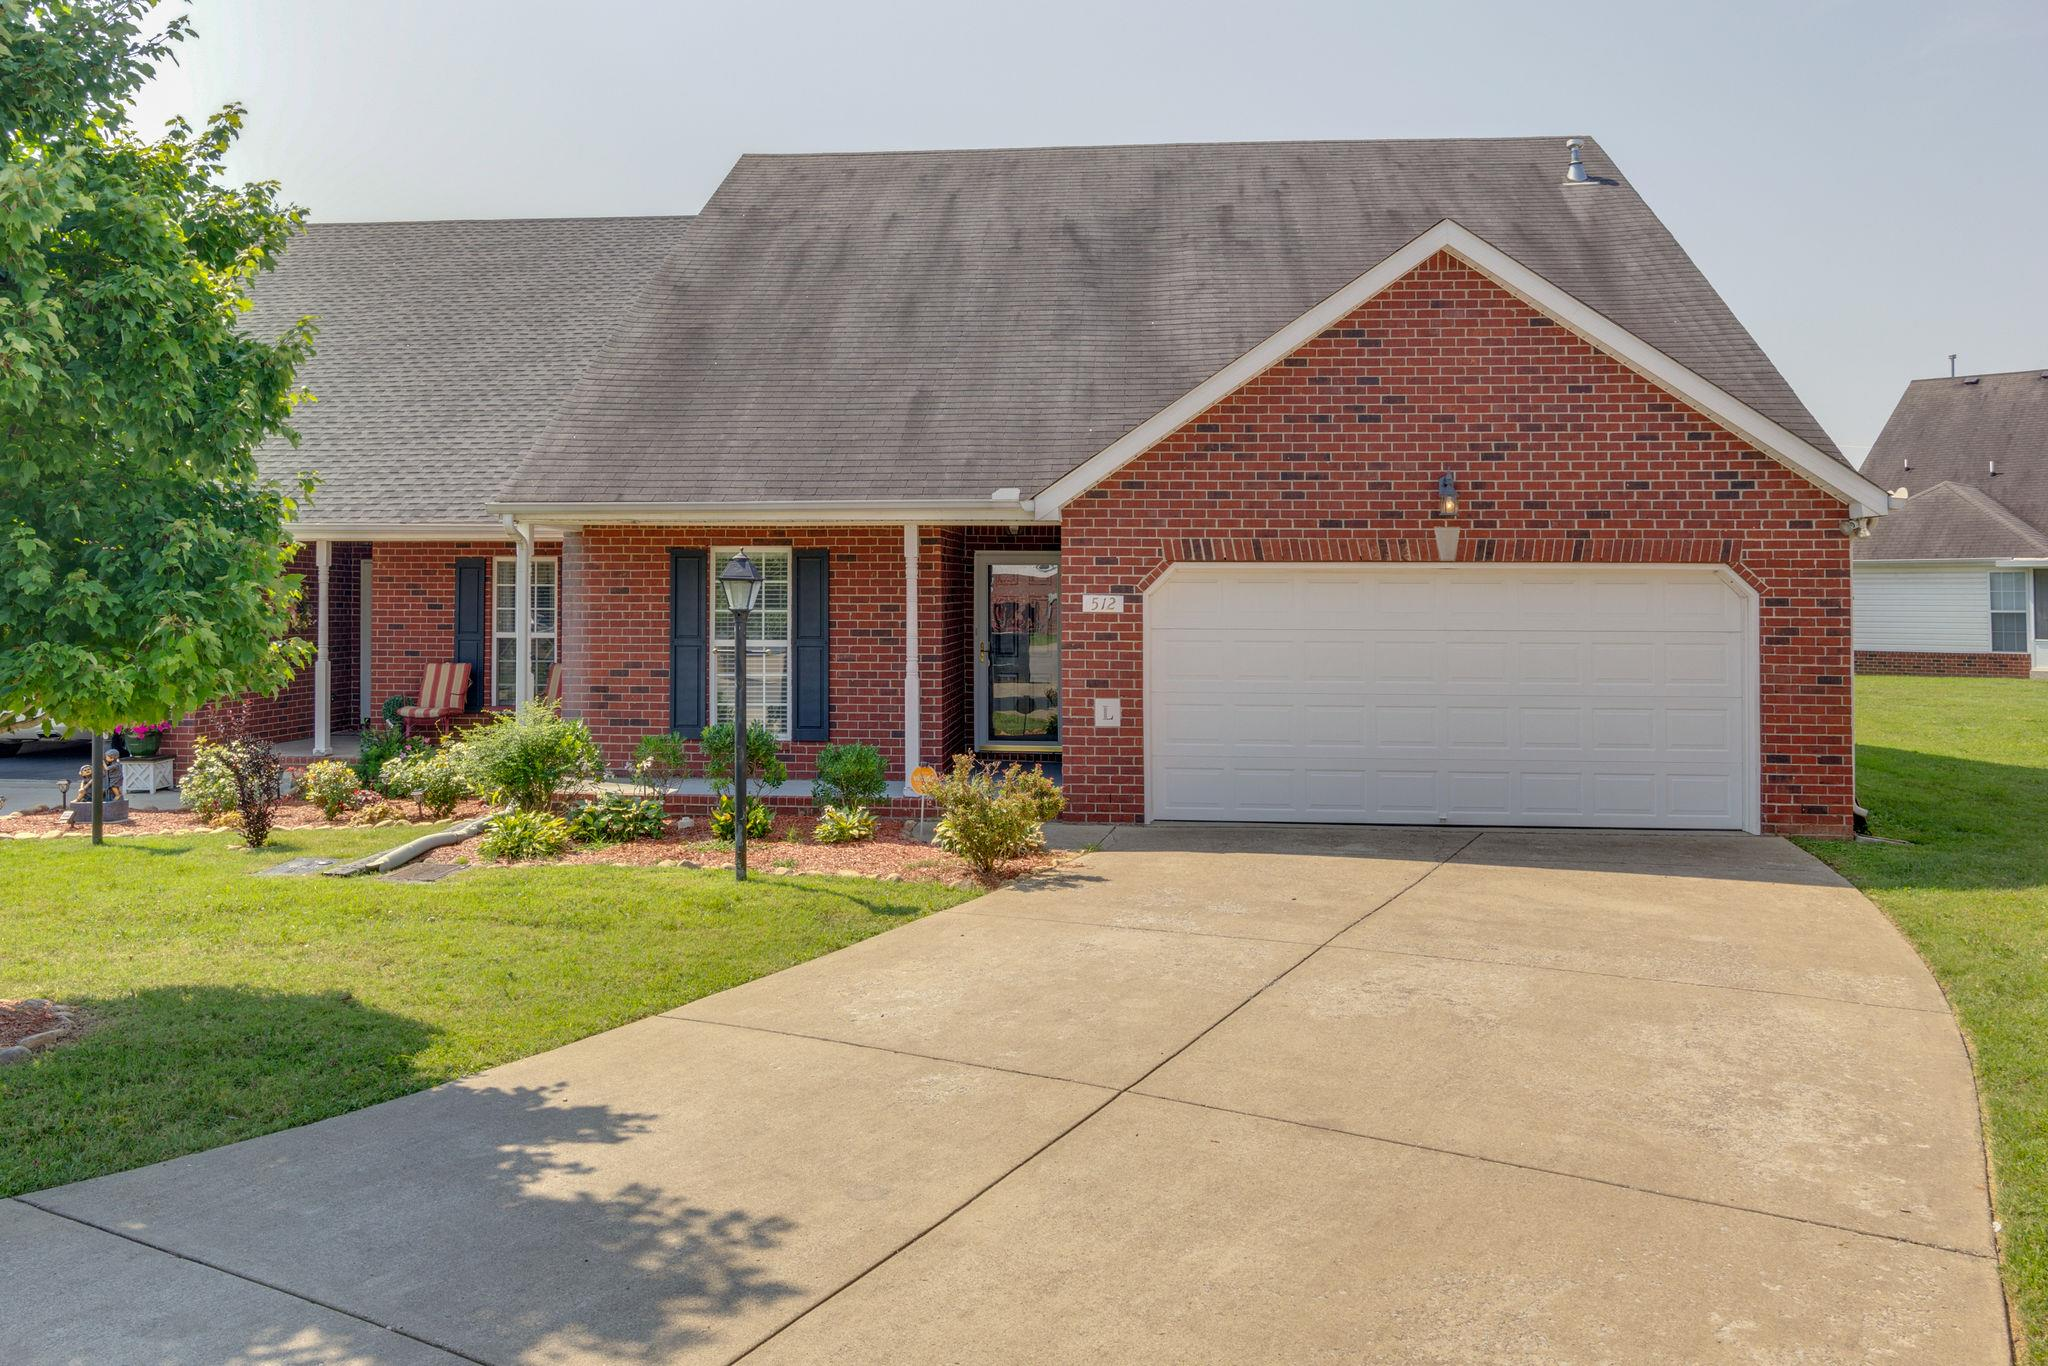 512 Yellowstone Ct, Nashville-Antioch, Tennessee